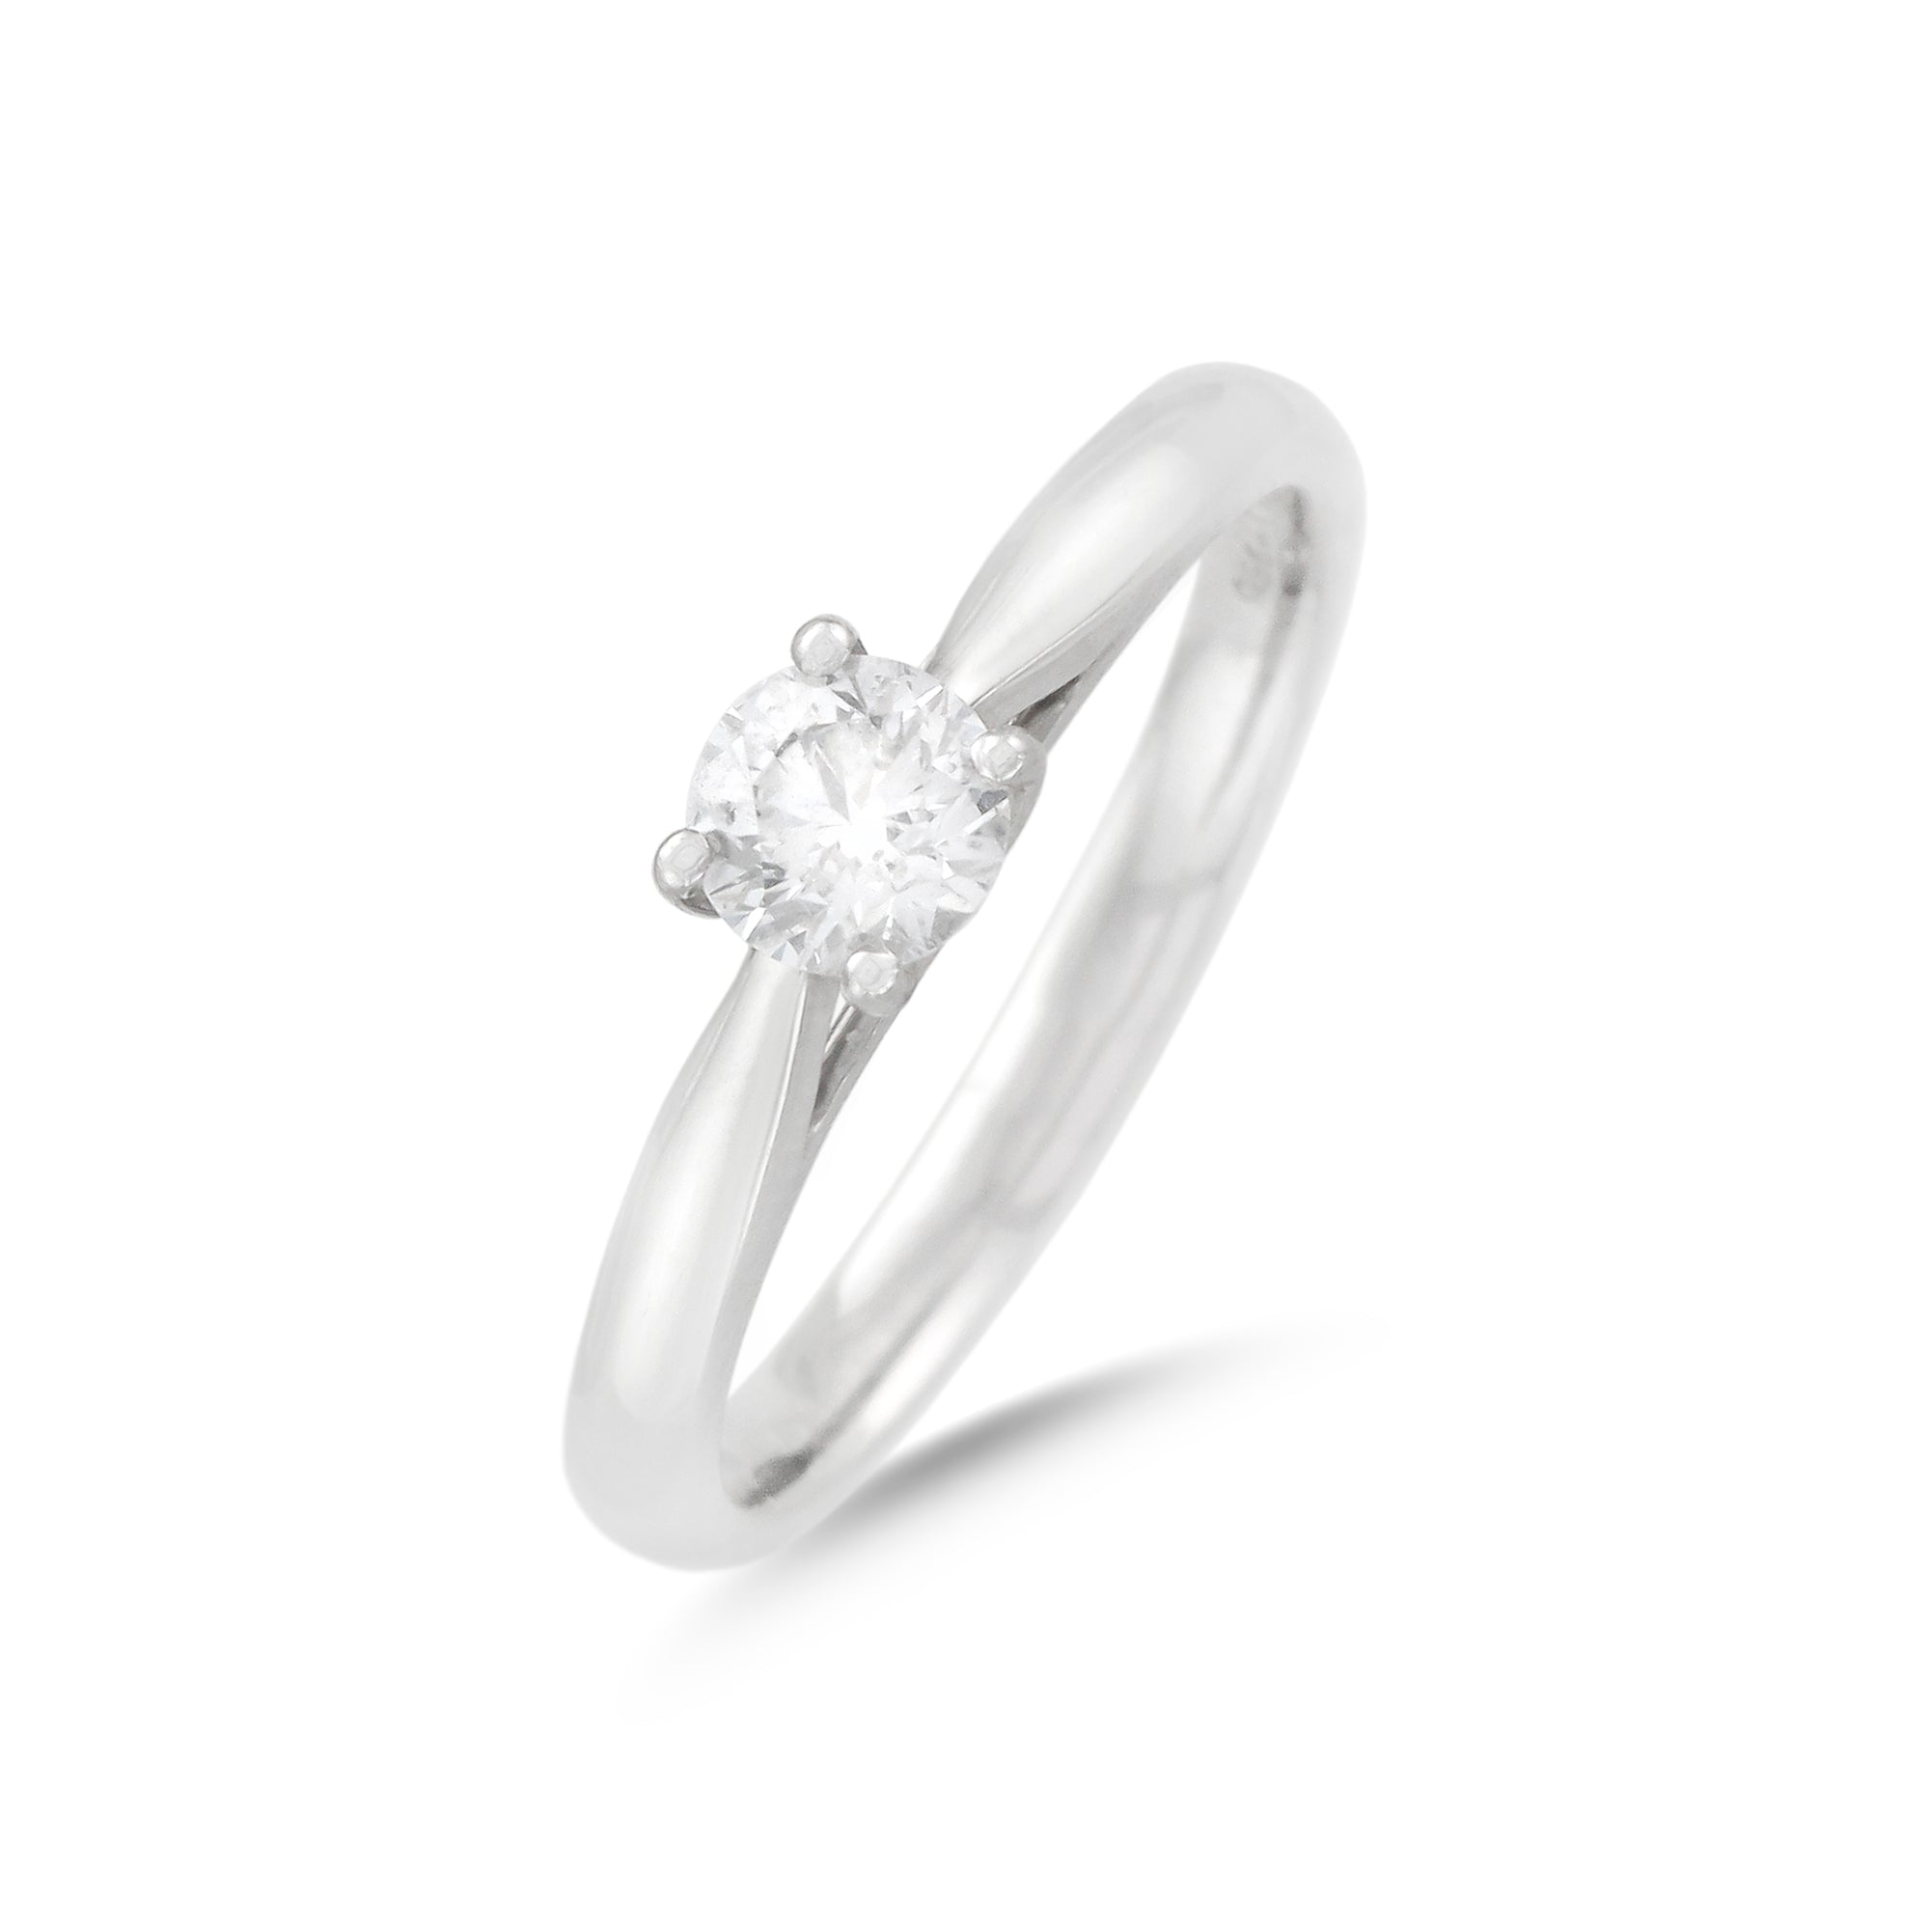 0.41ct Round Brilliant Solitaire Diamond Engagement Ring